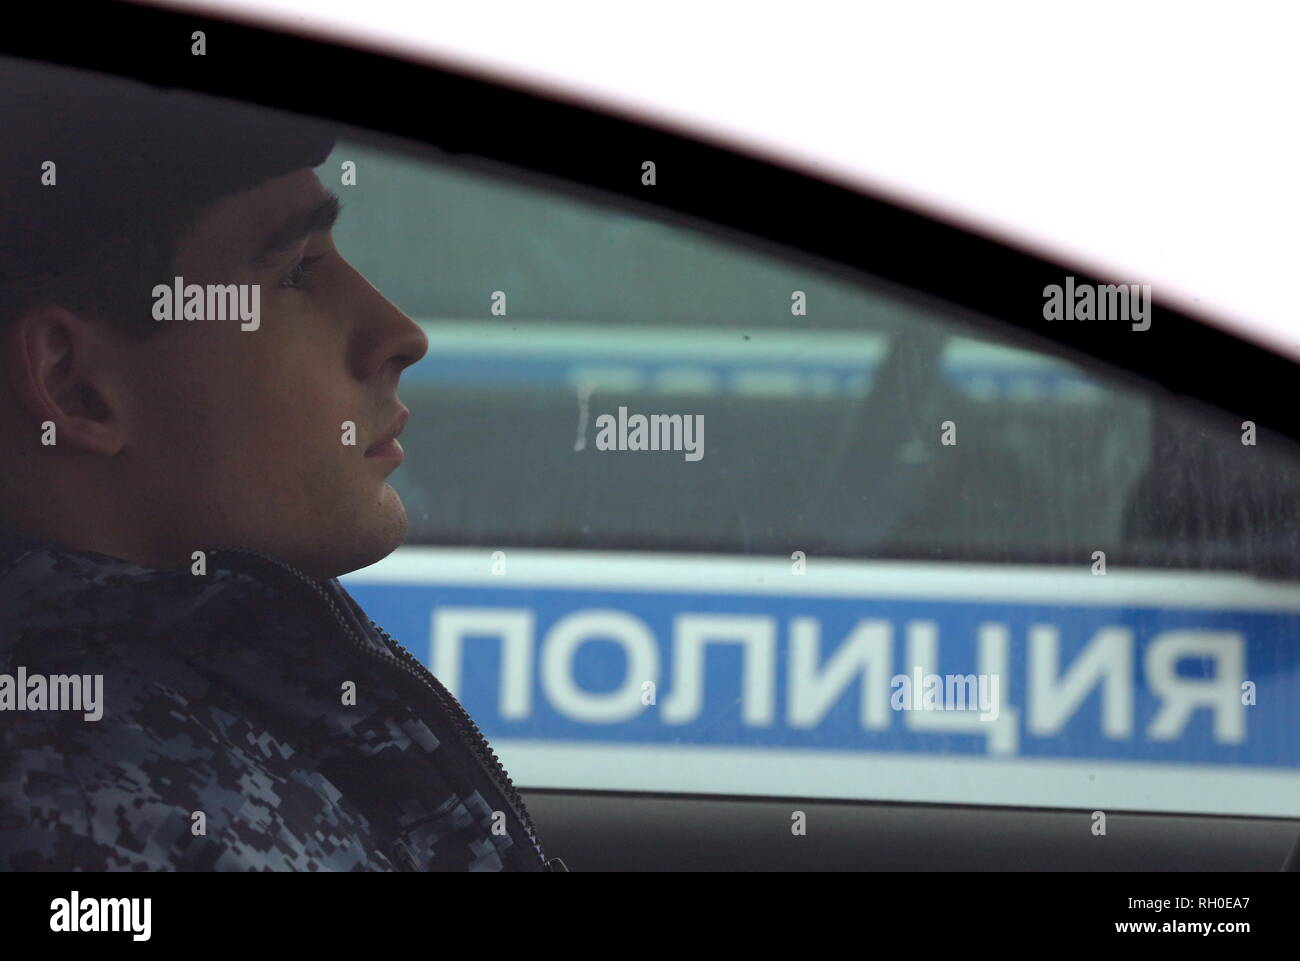 Moscow, Russia. 31st Jan, 2019. MOSCOW, RUSSIA - JANUARY 31, 2019: A serviceman behind the wheel in one of the 65 new Renault Logan company cars to be given to independent security service units of the Russian National Guard, on Moscow's Poklonnaya Hill. Vladimir Gerdo/TASS Credit: ITAR-TASS News Agency/Alamy Live News - Stock Image